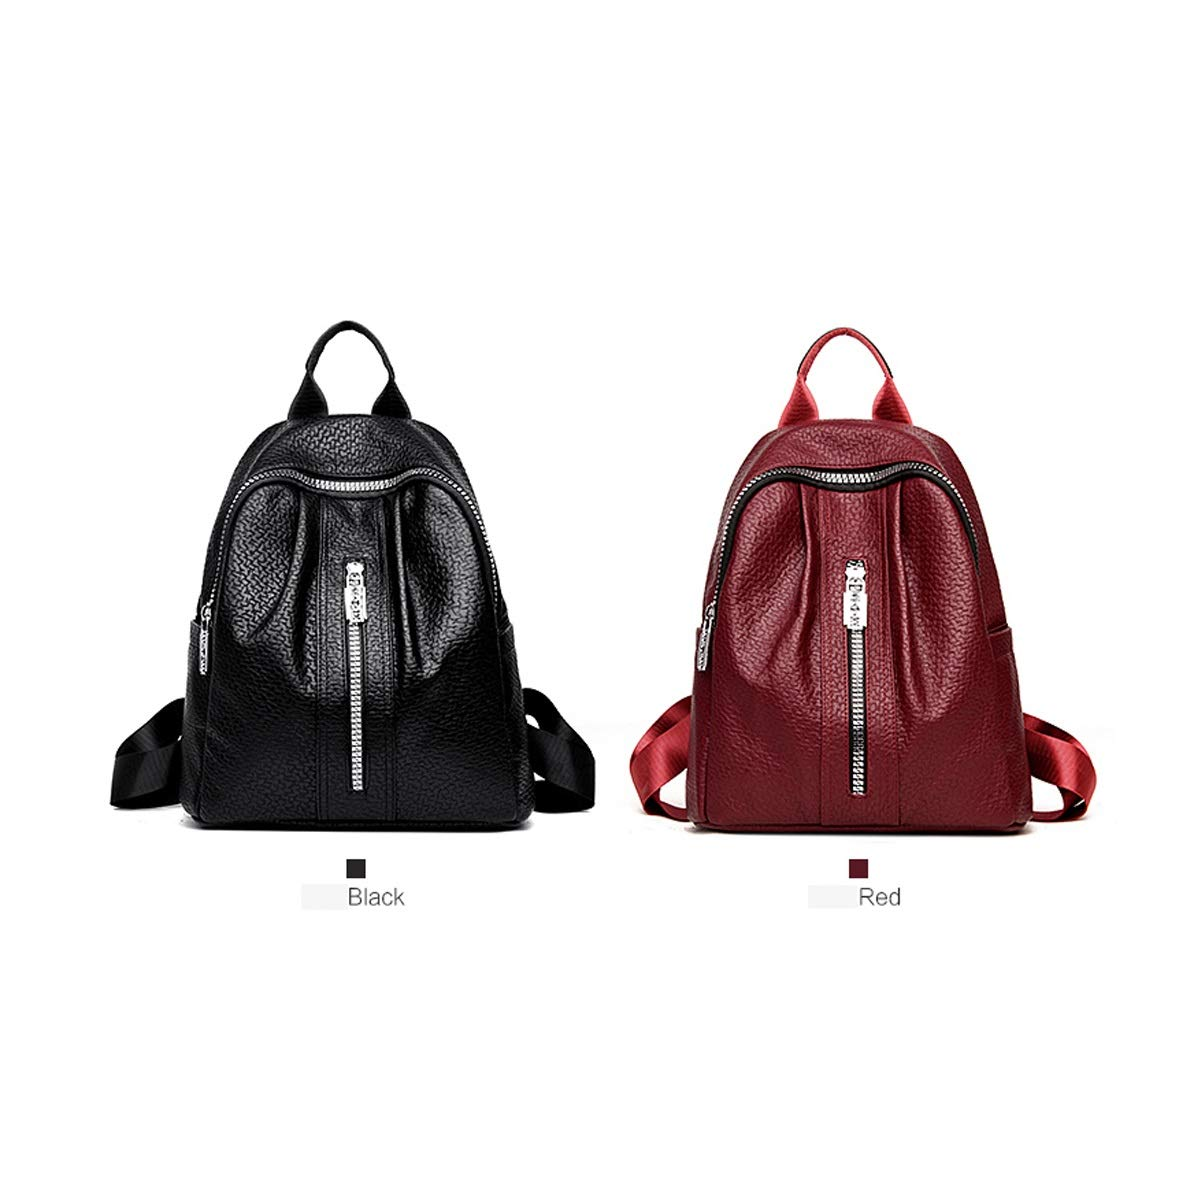 8haowenju Girls Multifunctional Backpack for Daily Travel//Tourism//School//Work//Fashion//Leisure Black//red Color : Black, Size : 32cm34cm15cm PU Leather Stylish Large Capacity Latest Models